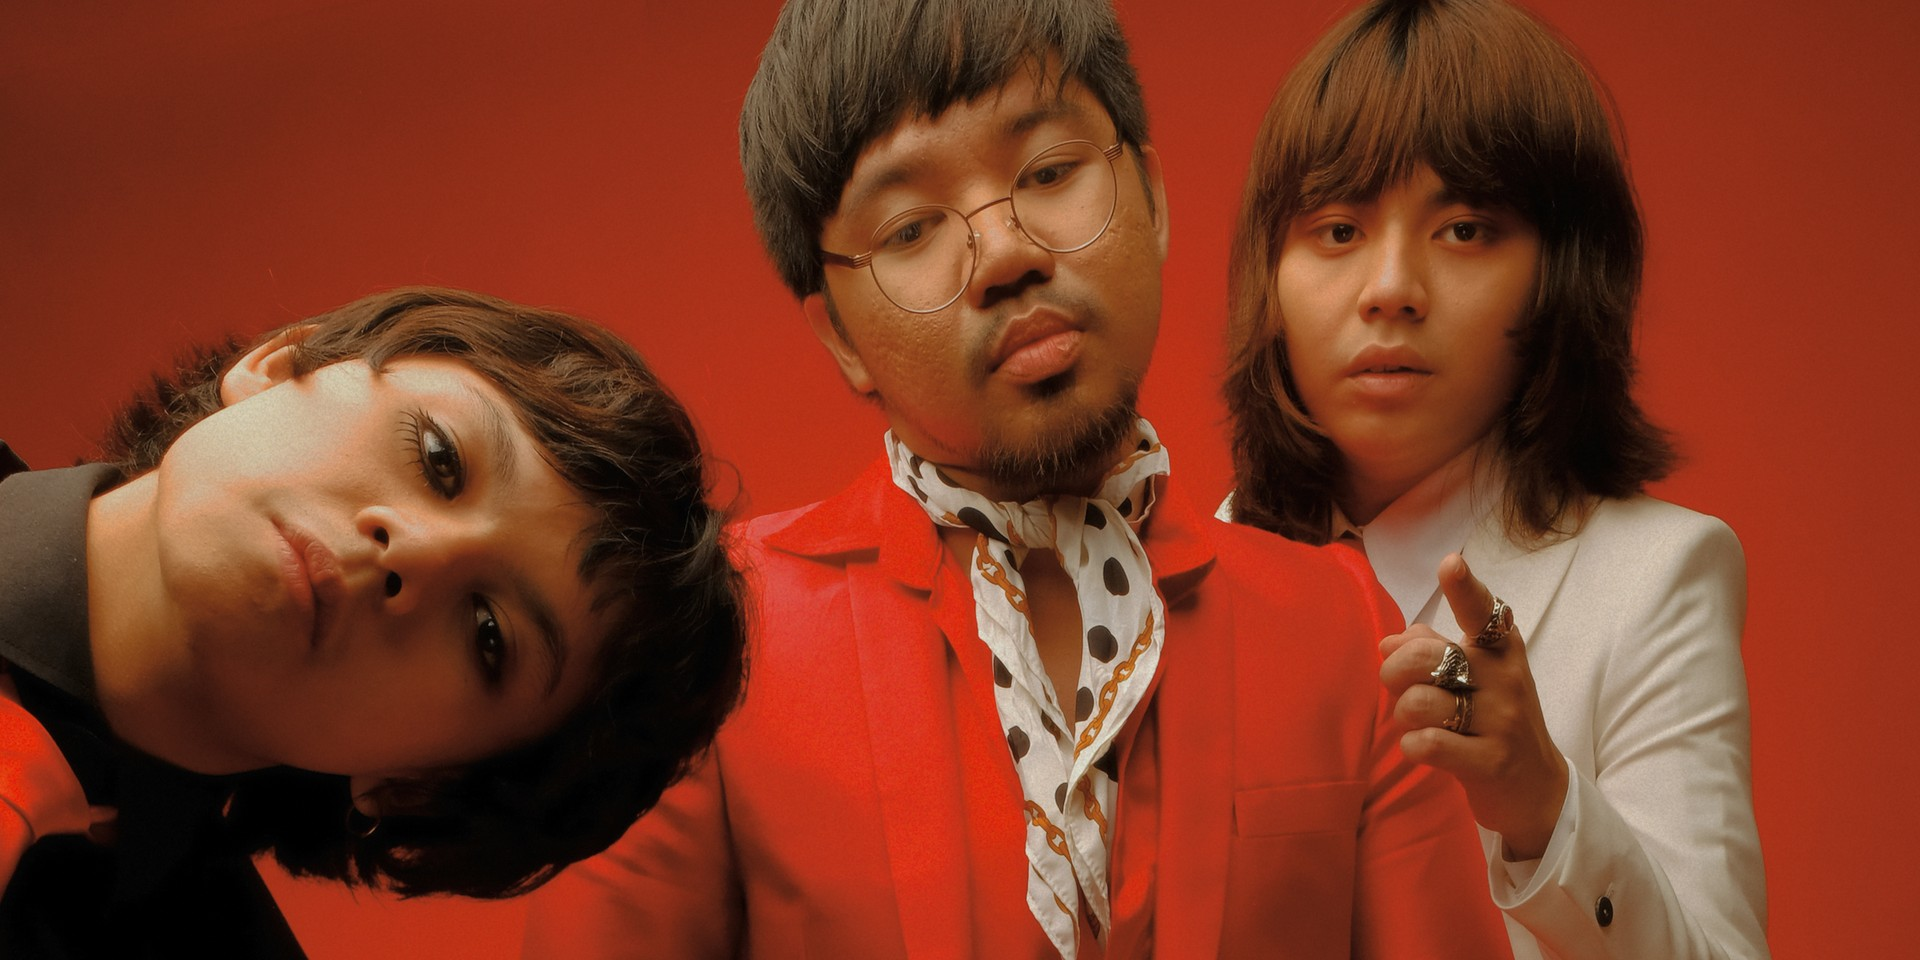 Here's how you can get a signed physical copy of IV of Spades' debut album, CLAPCLAPCLAP!